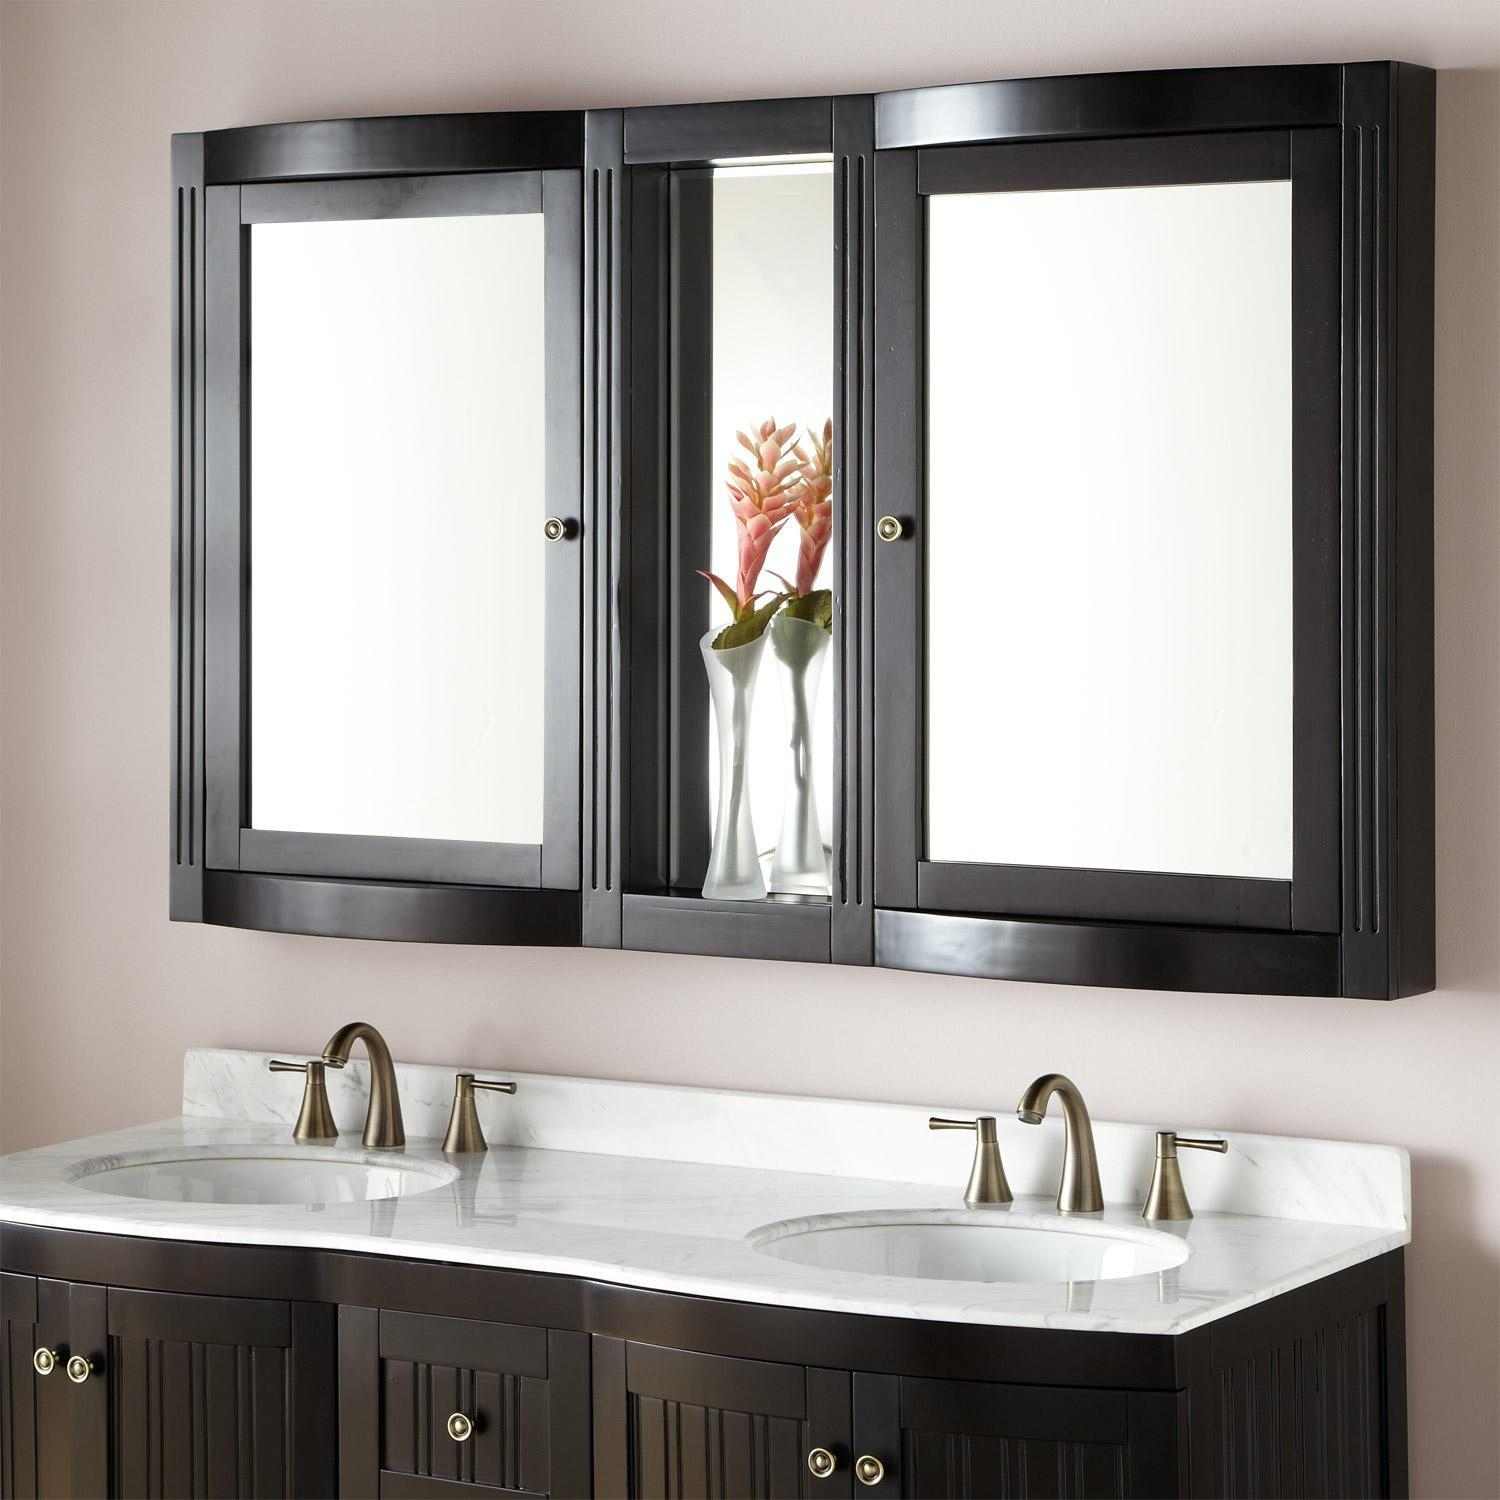 Bathroom Cabinets : Espresso Lighted Bathroom Cabinets With Regarding Bathroom Cabinets Mirrors (View 14 of 20)